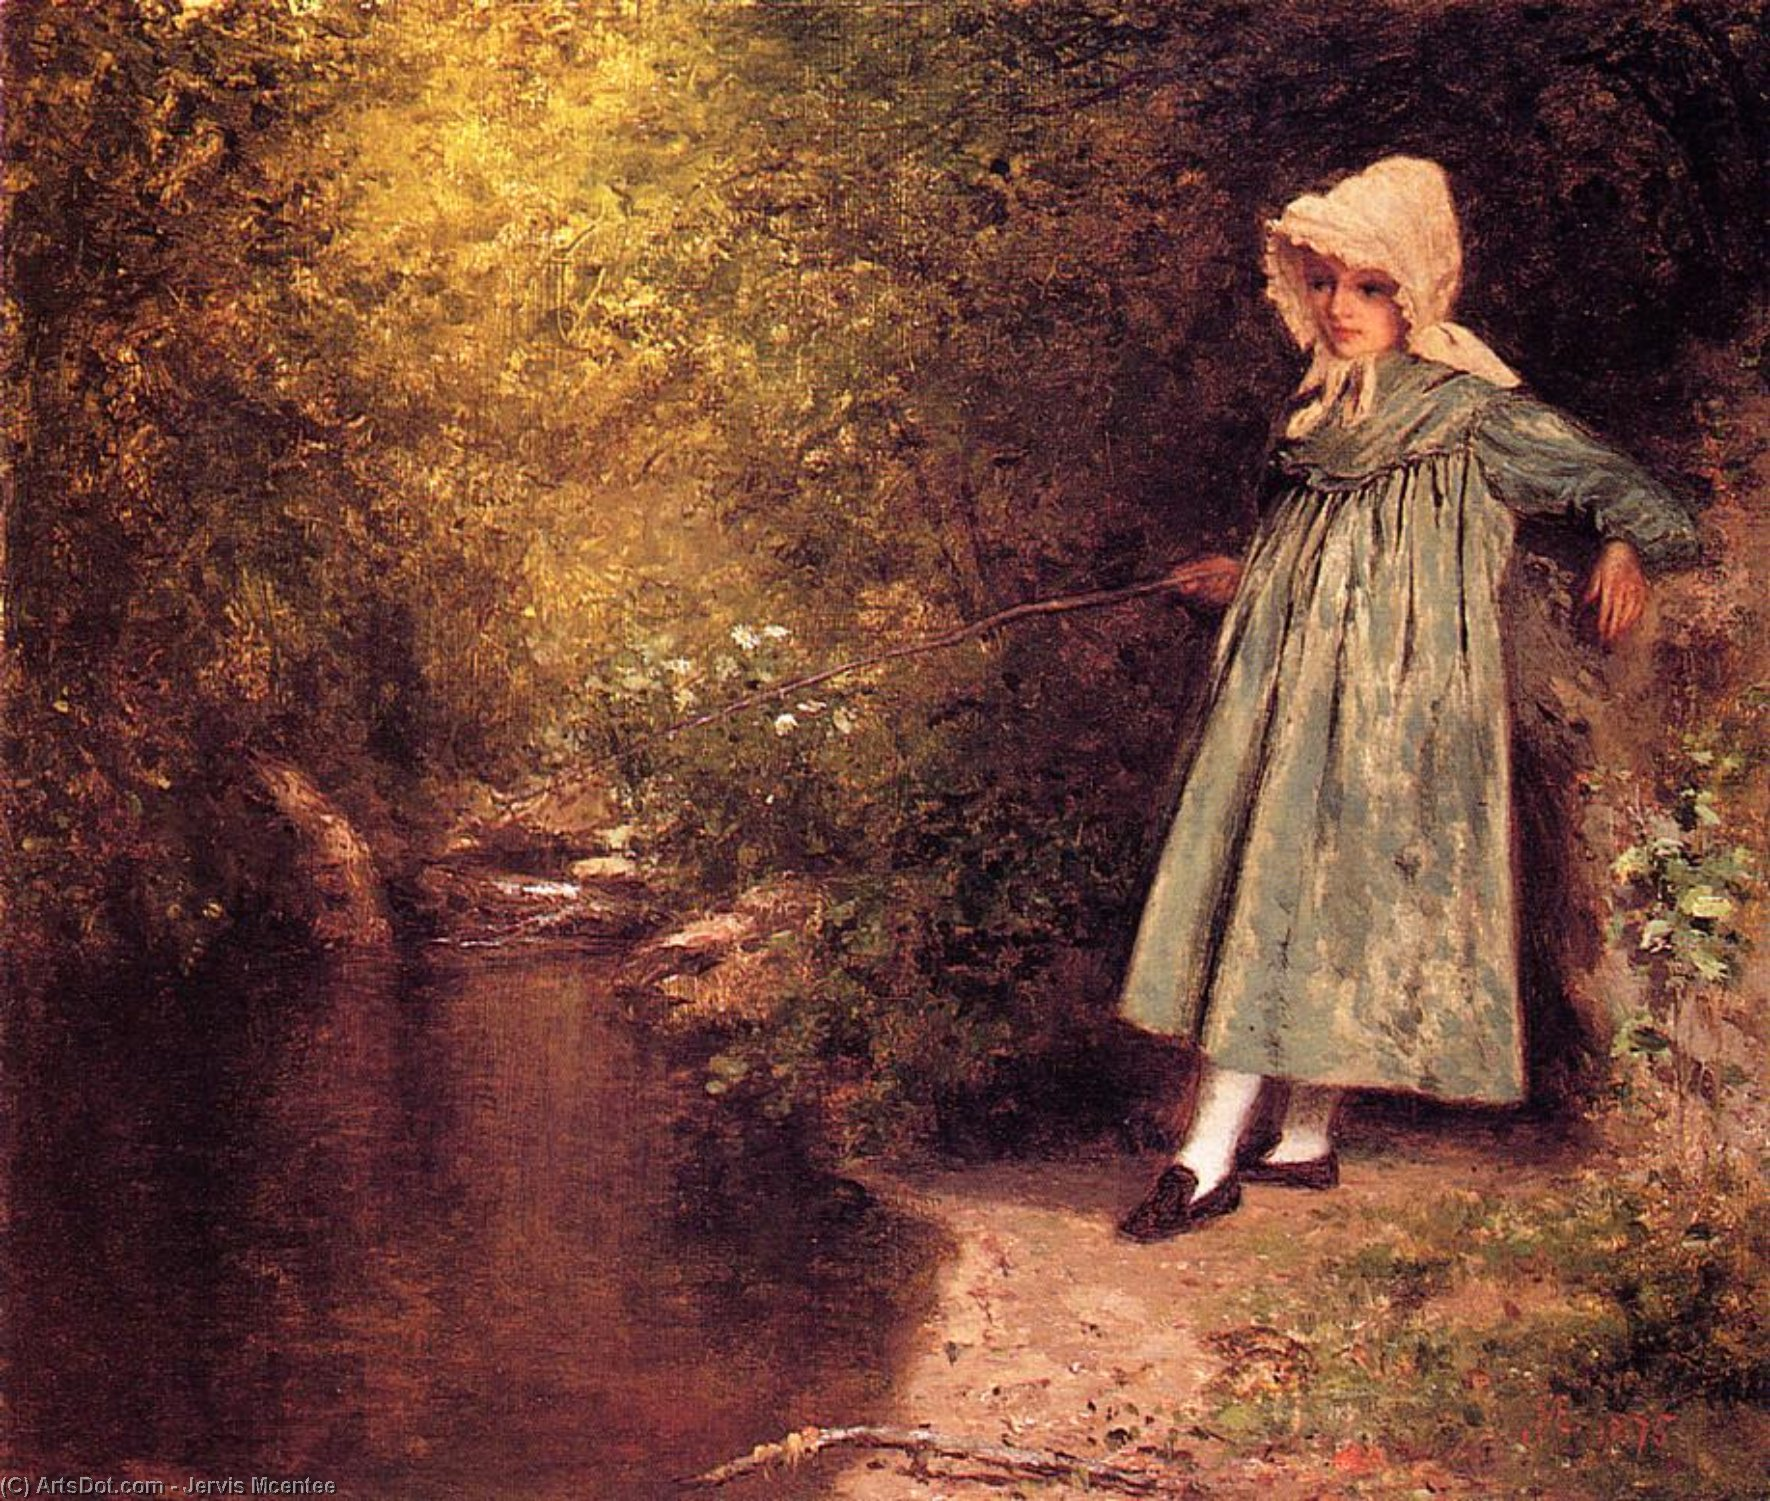 Order Art Reproduction : My Little Fisher Girl, 1875 by Jervis Mcentee (1828-1891, United States) | ArtsDot.com